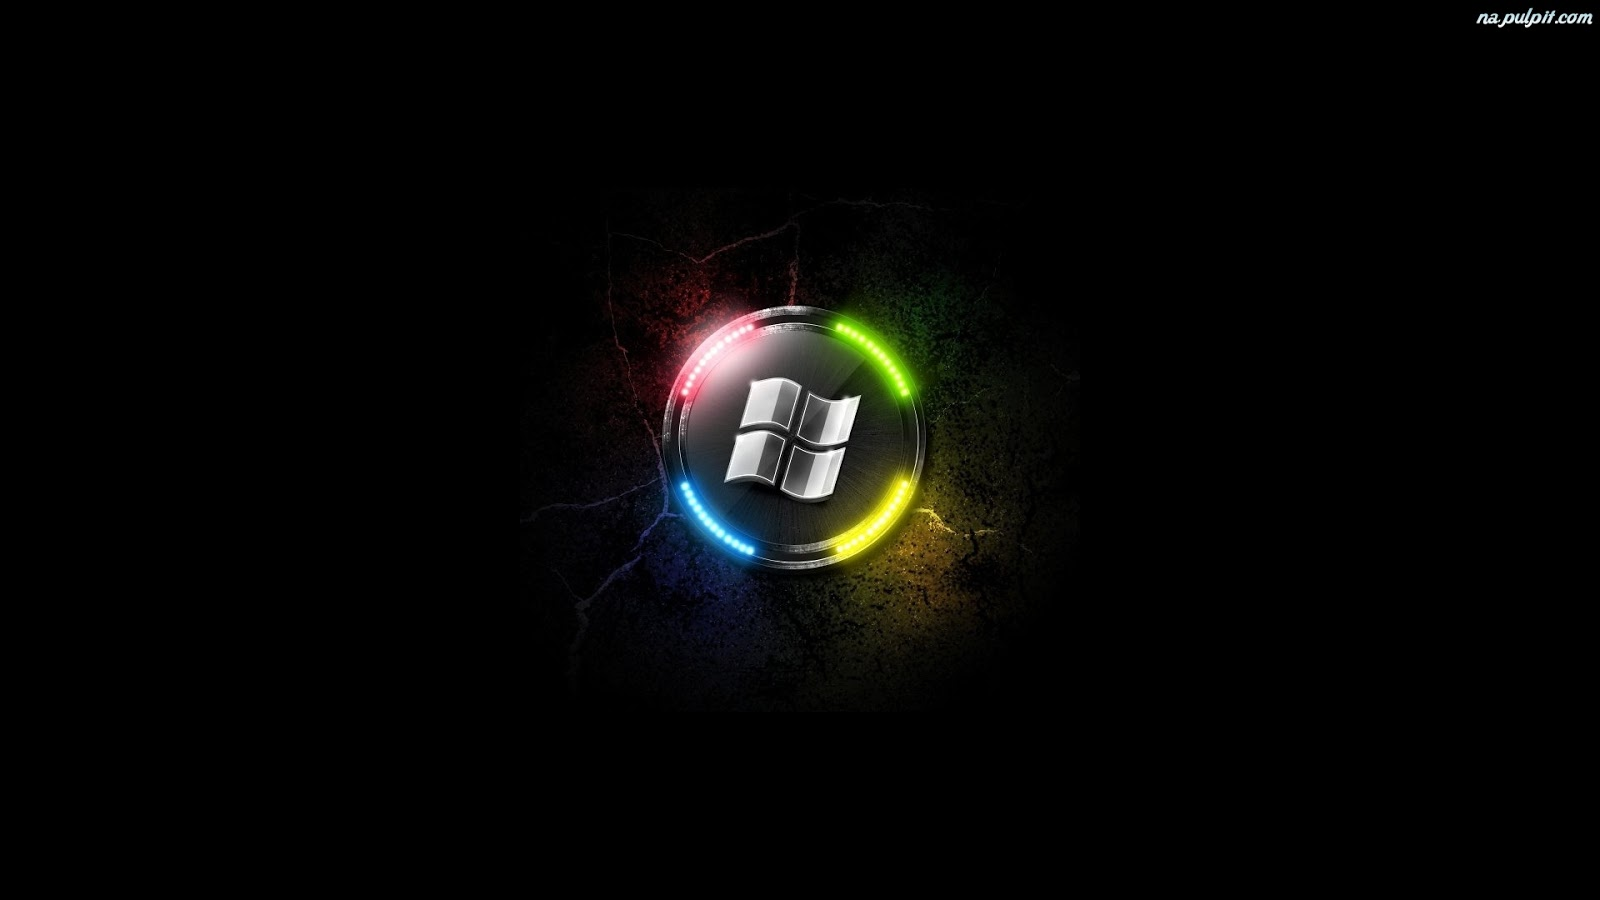 Microsoft Windows Logos Wallpapers | Nice Wallpapers